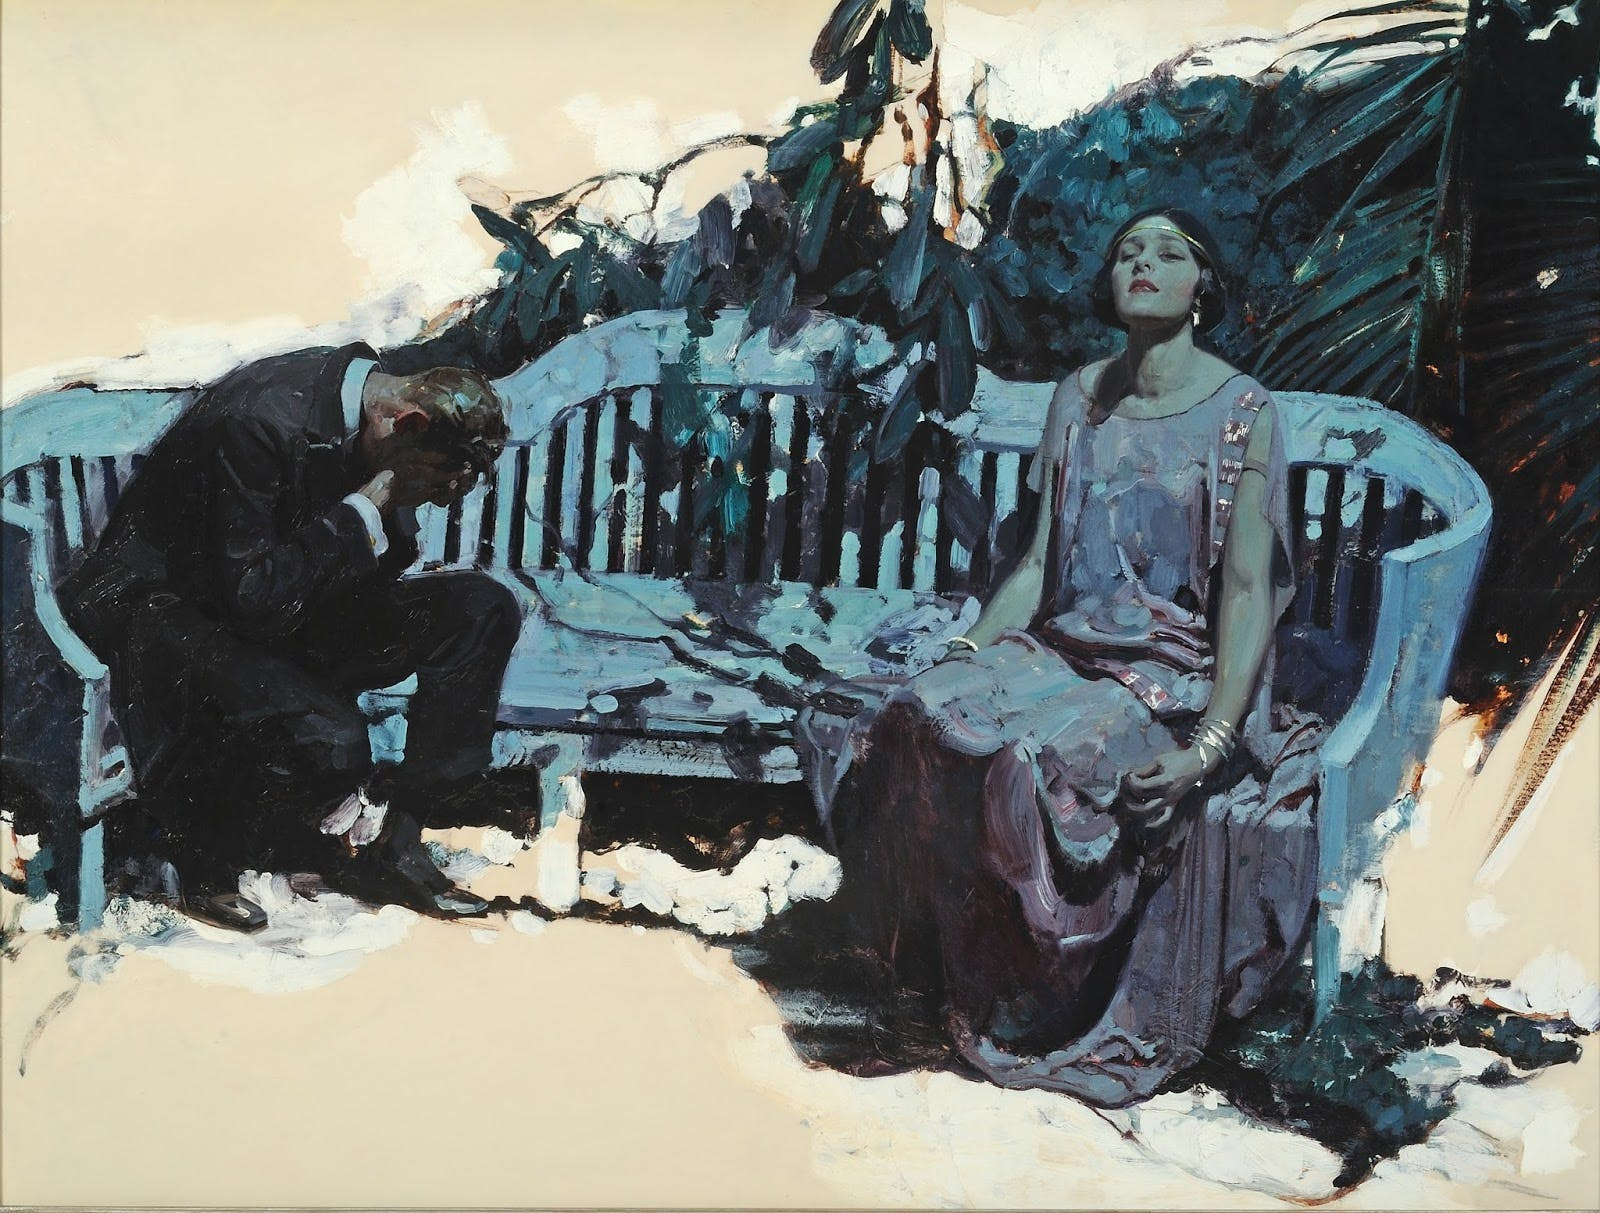 DEAN CORNWELL: A DOMINANT PRESENCE IN AMERICAN ILLUSTRATION